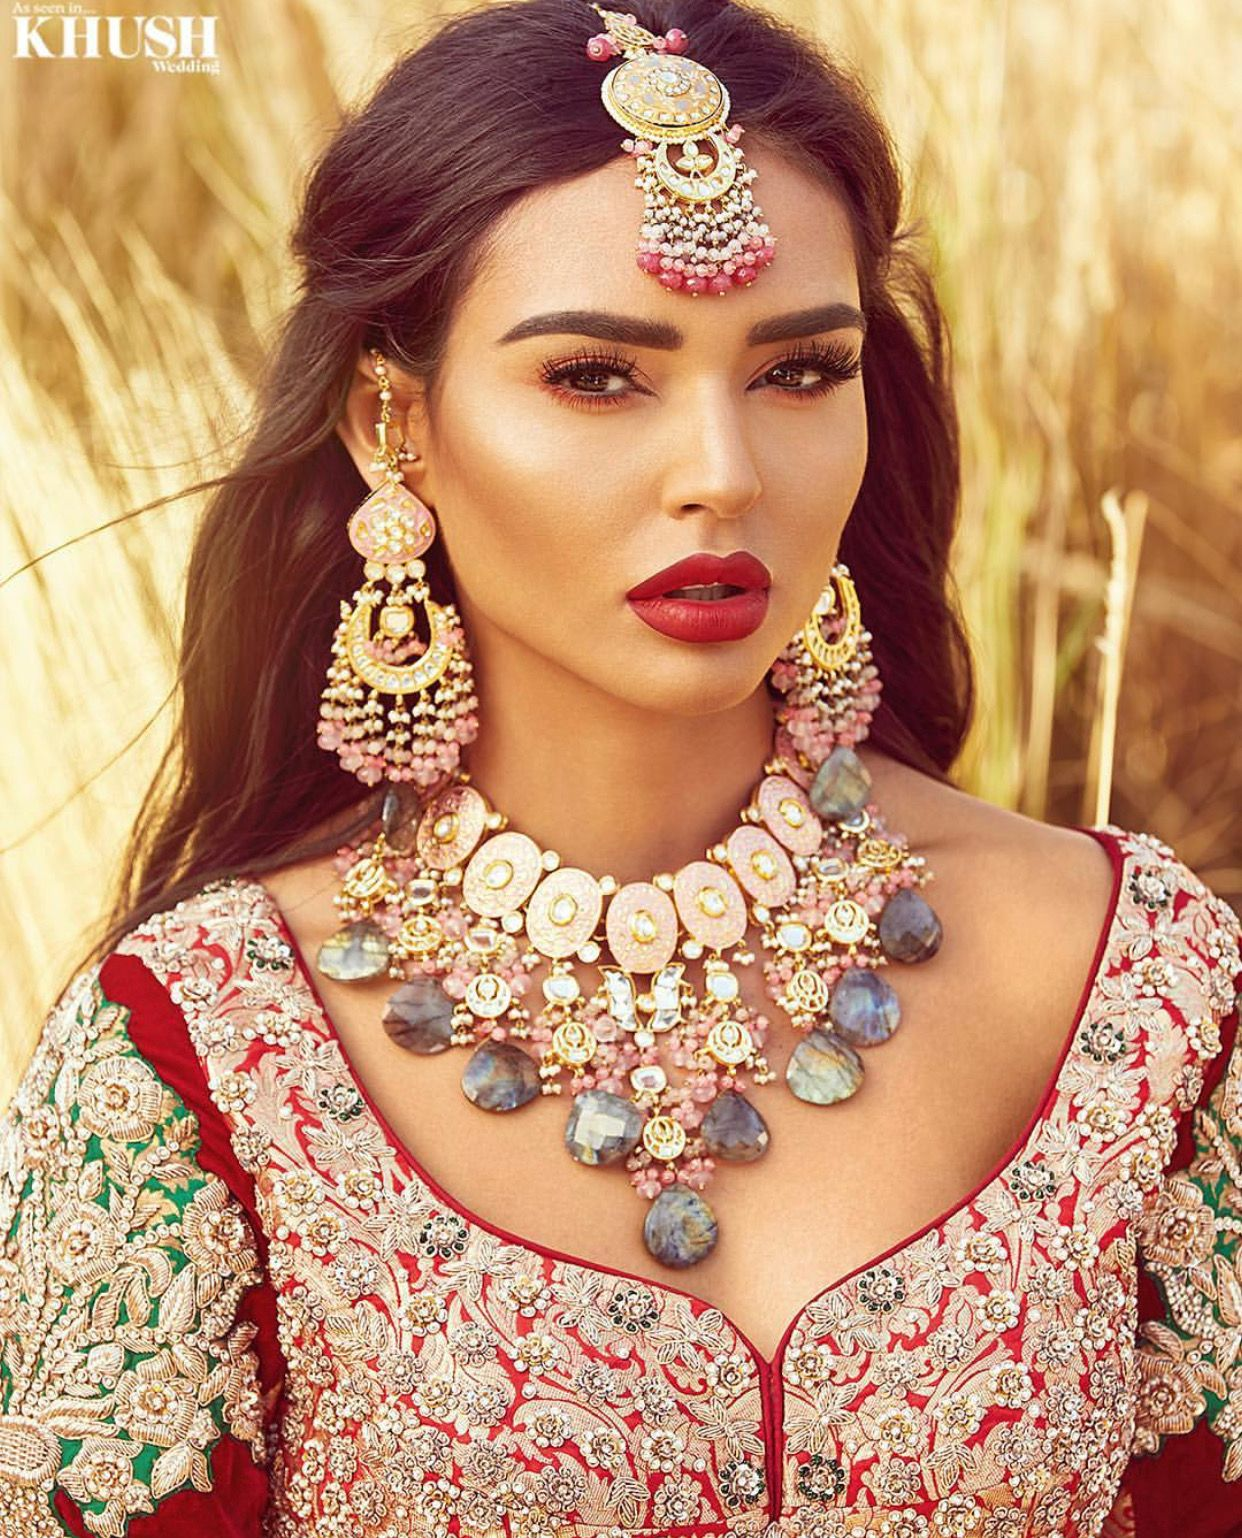 pinterest: @pawank90 | jewelry in 2019 | indian wedding